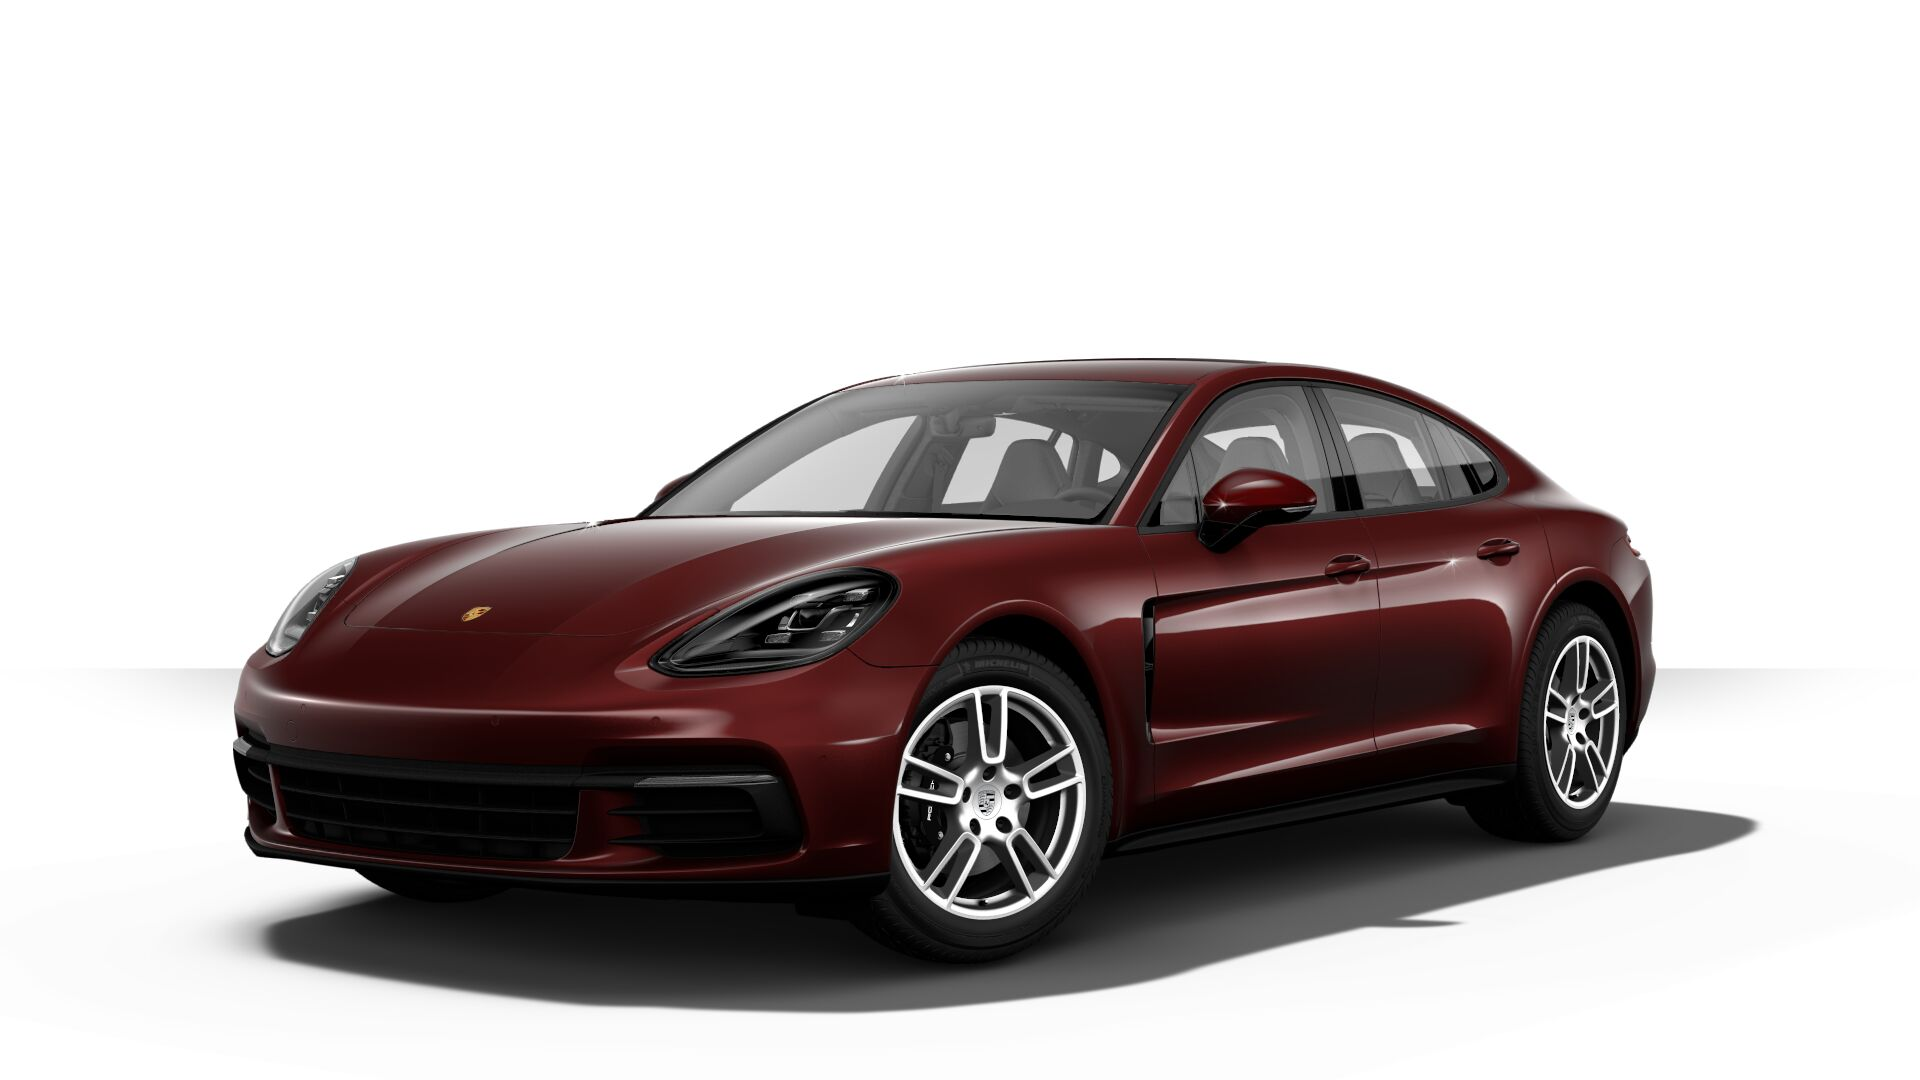 2019 Porsche Panamera in burgundy red